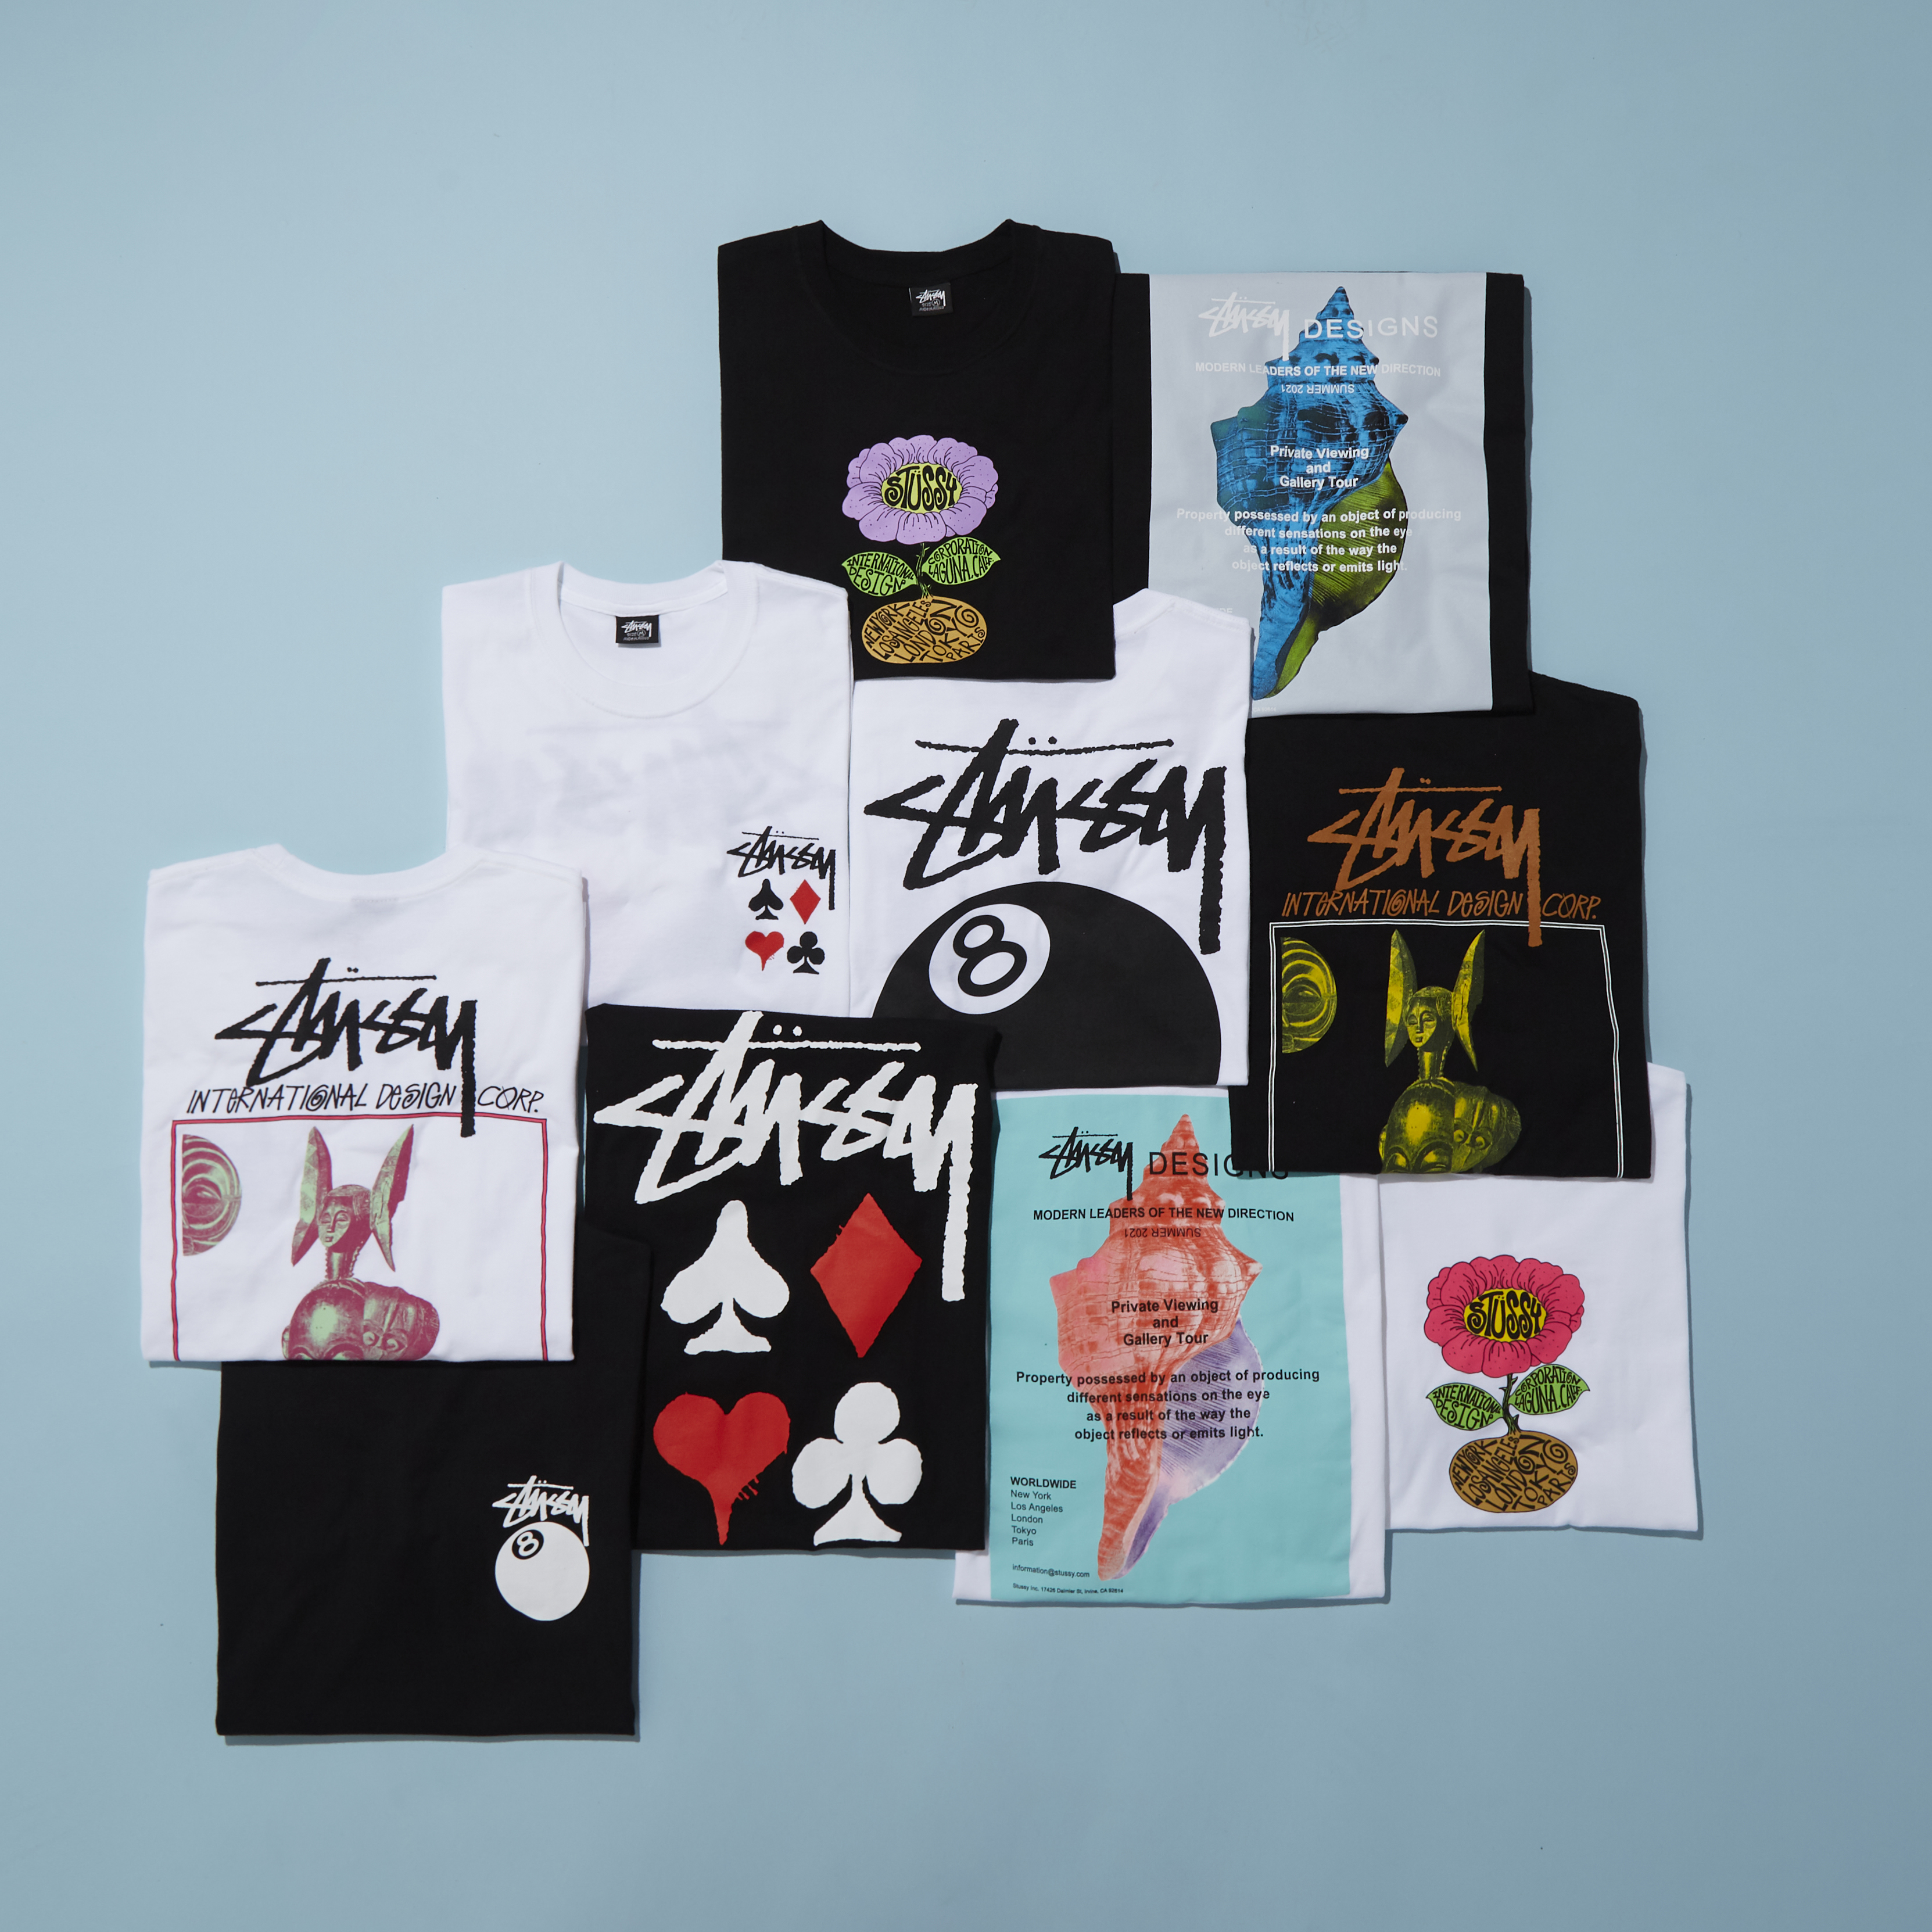 The Stussy Summer '21 – Drop One has landed